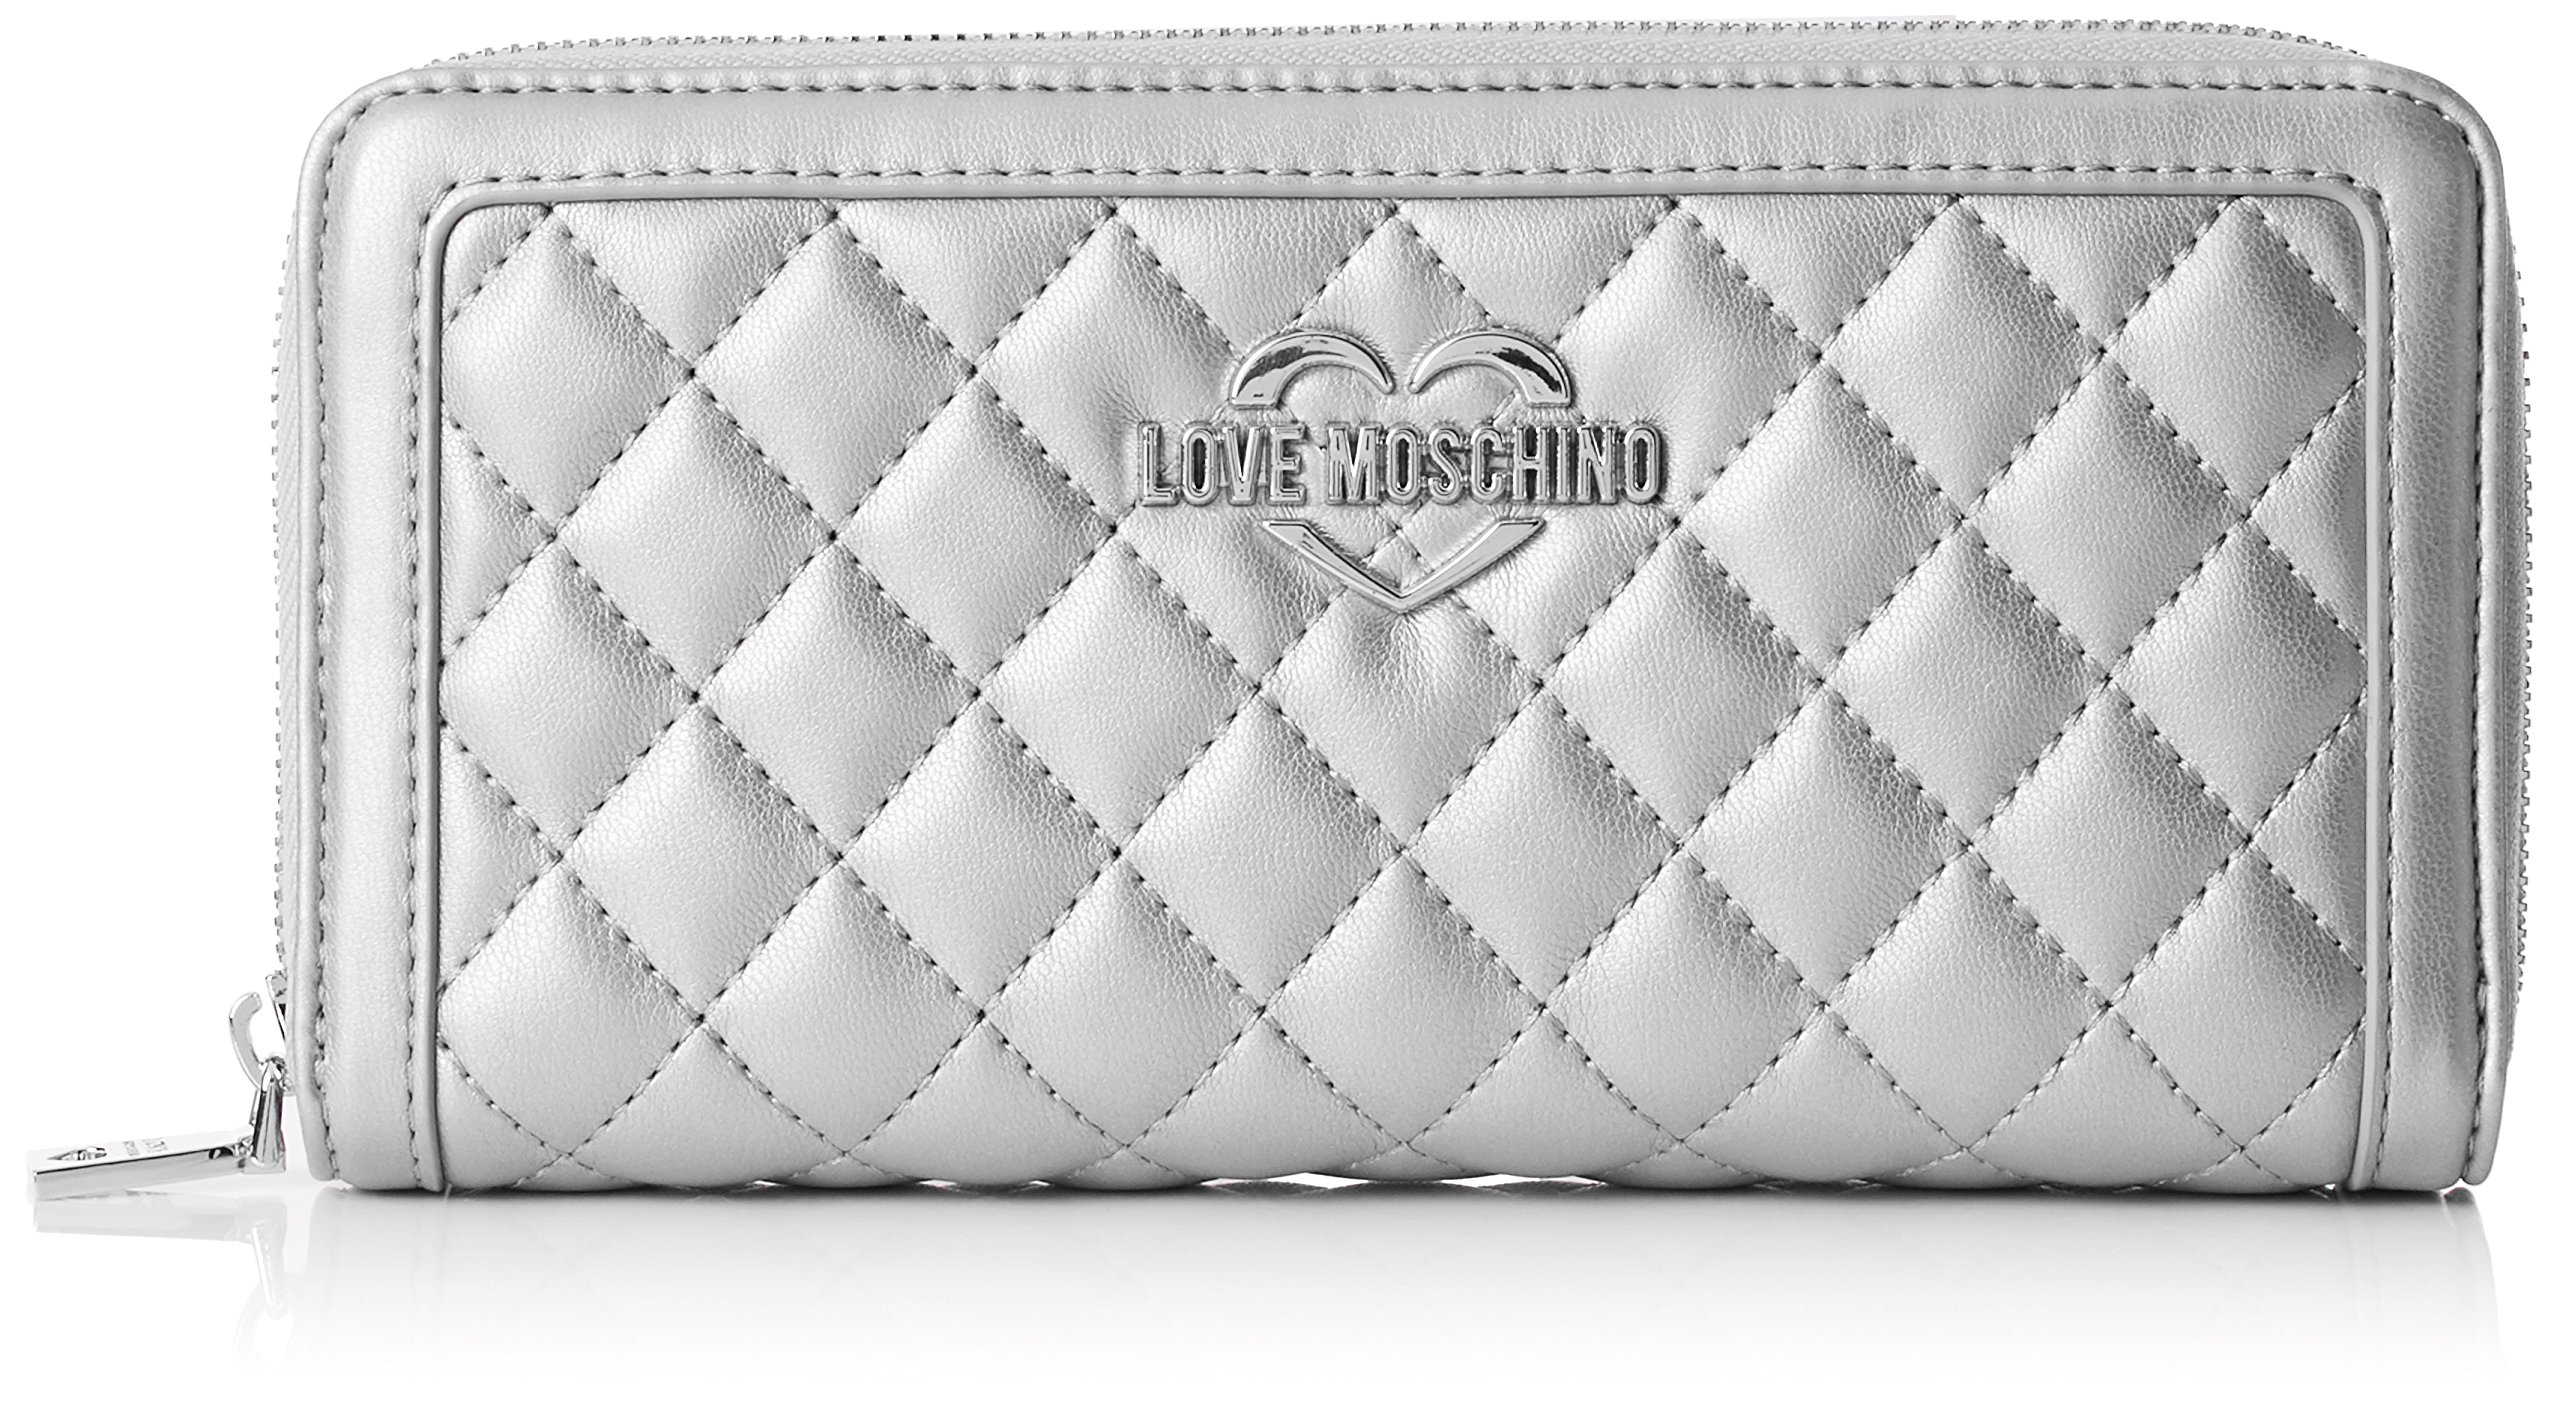 Love Moschino Portaf.quilted Metallic Pu Argento, Women's Clutch, Silver, 3x10x20 cm (B x H T)